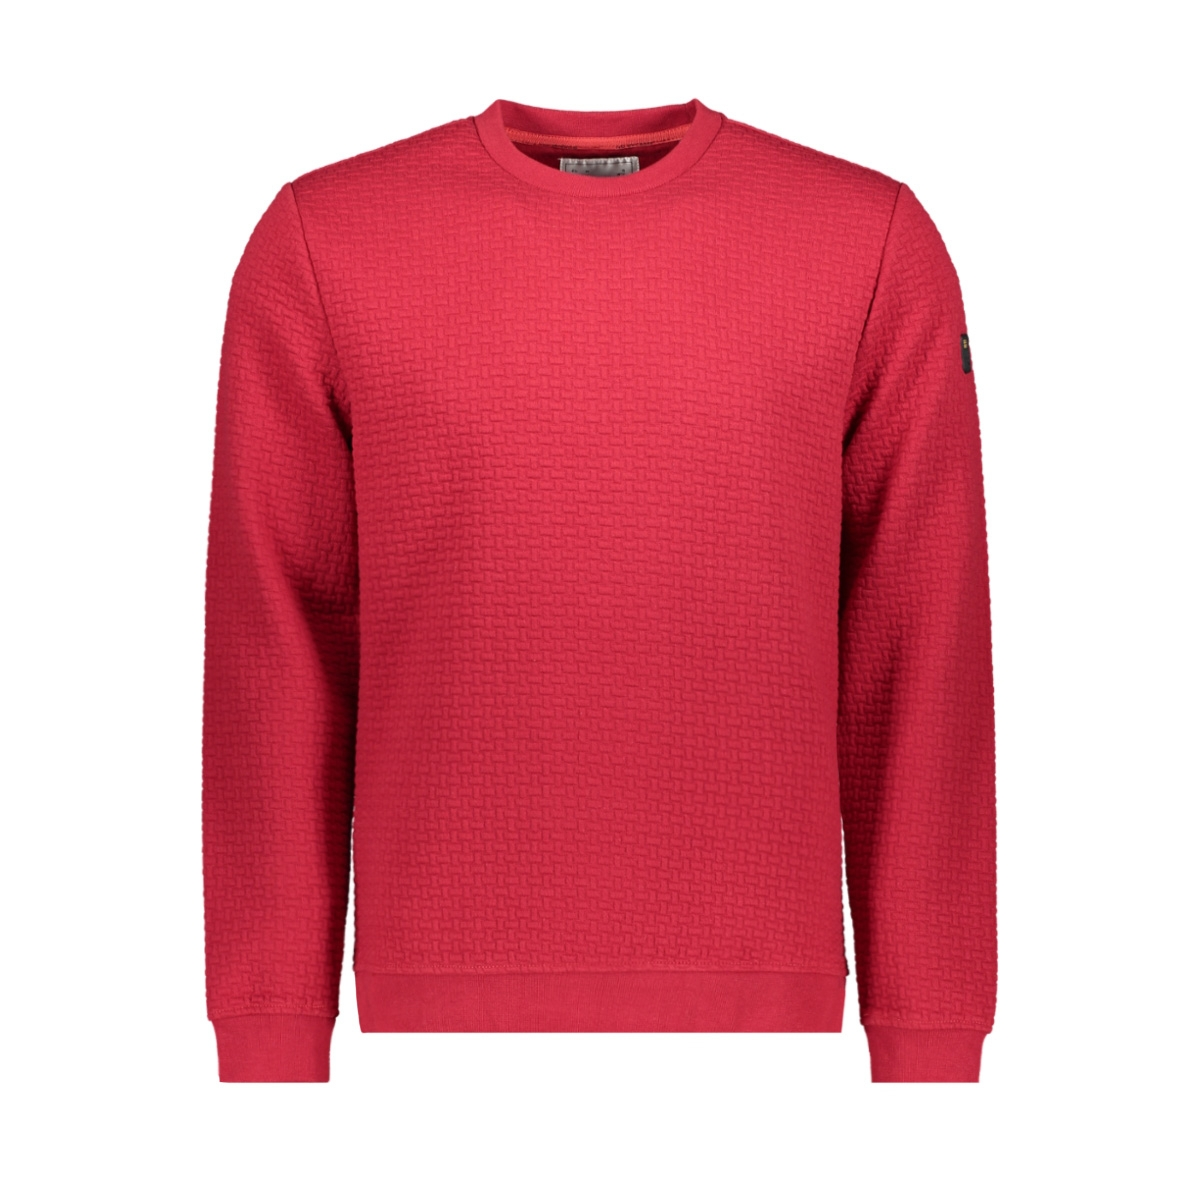 crewneck jacquard sweater 92100815n no-excess sweater 060 red